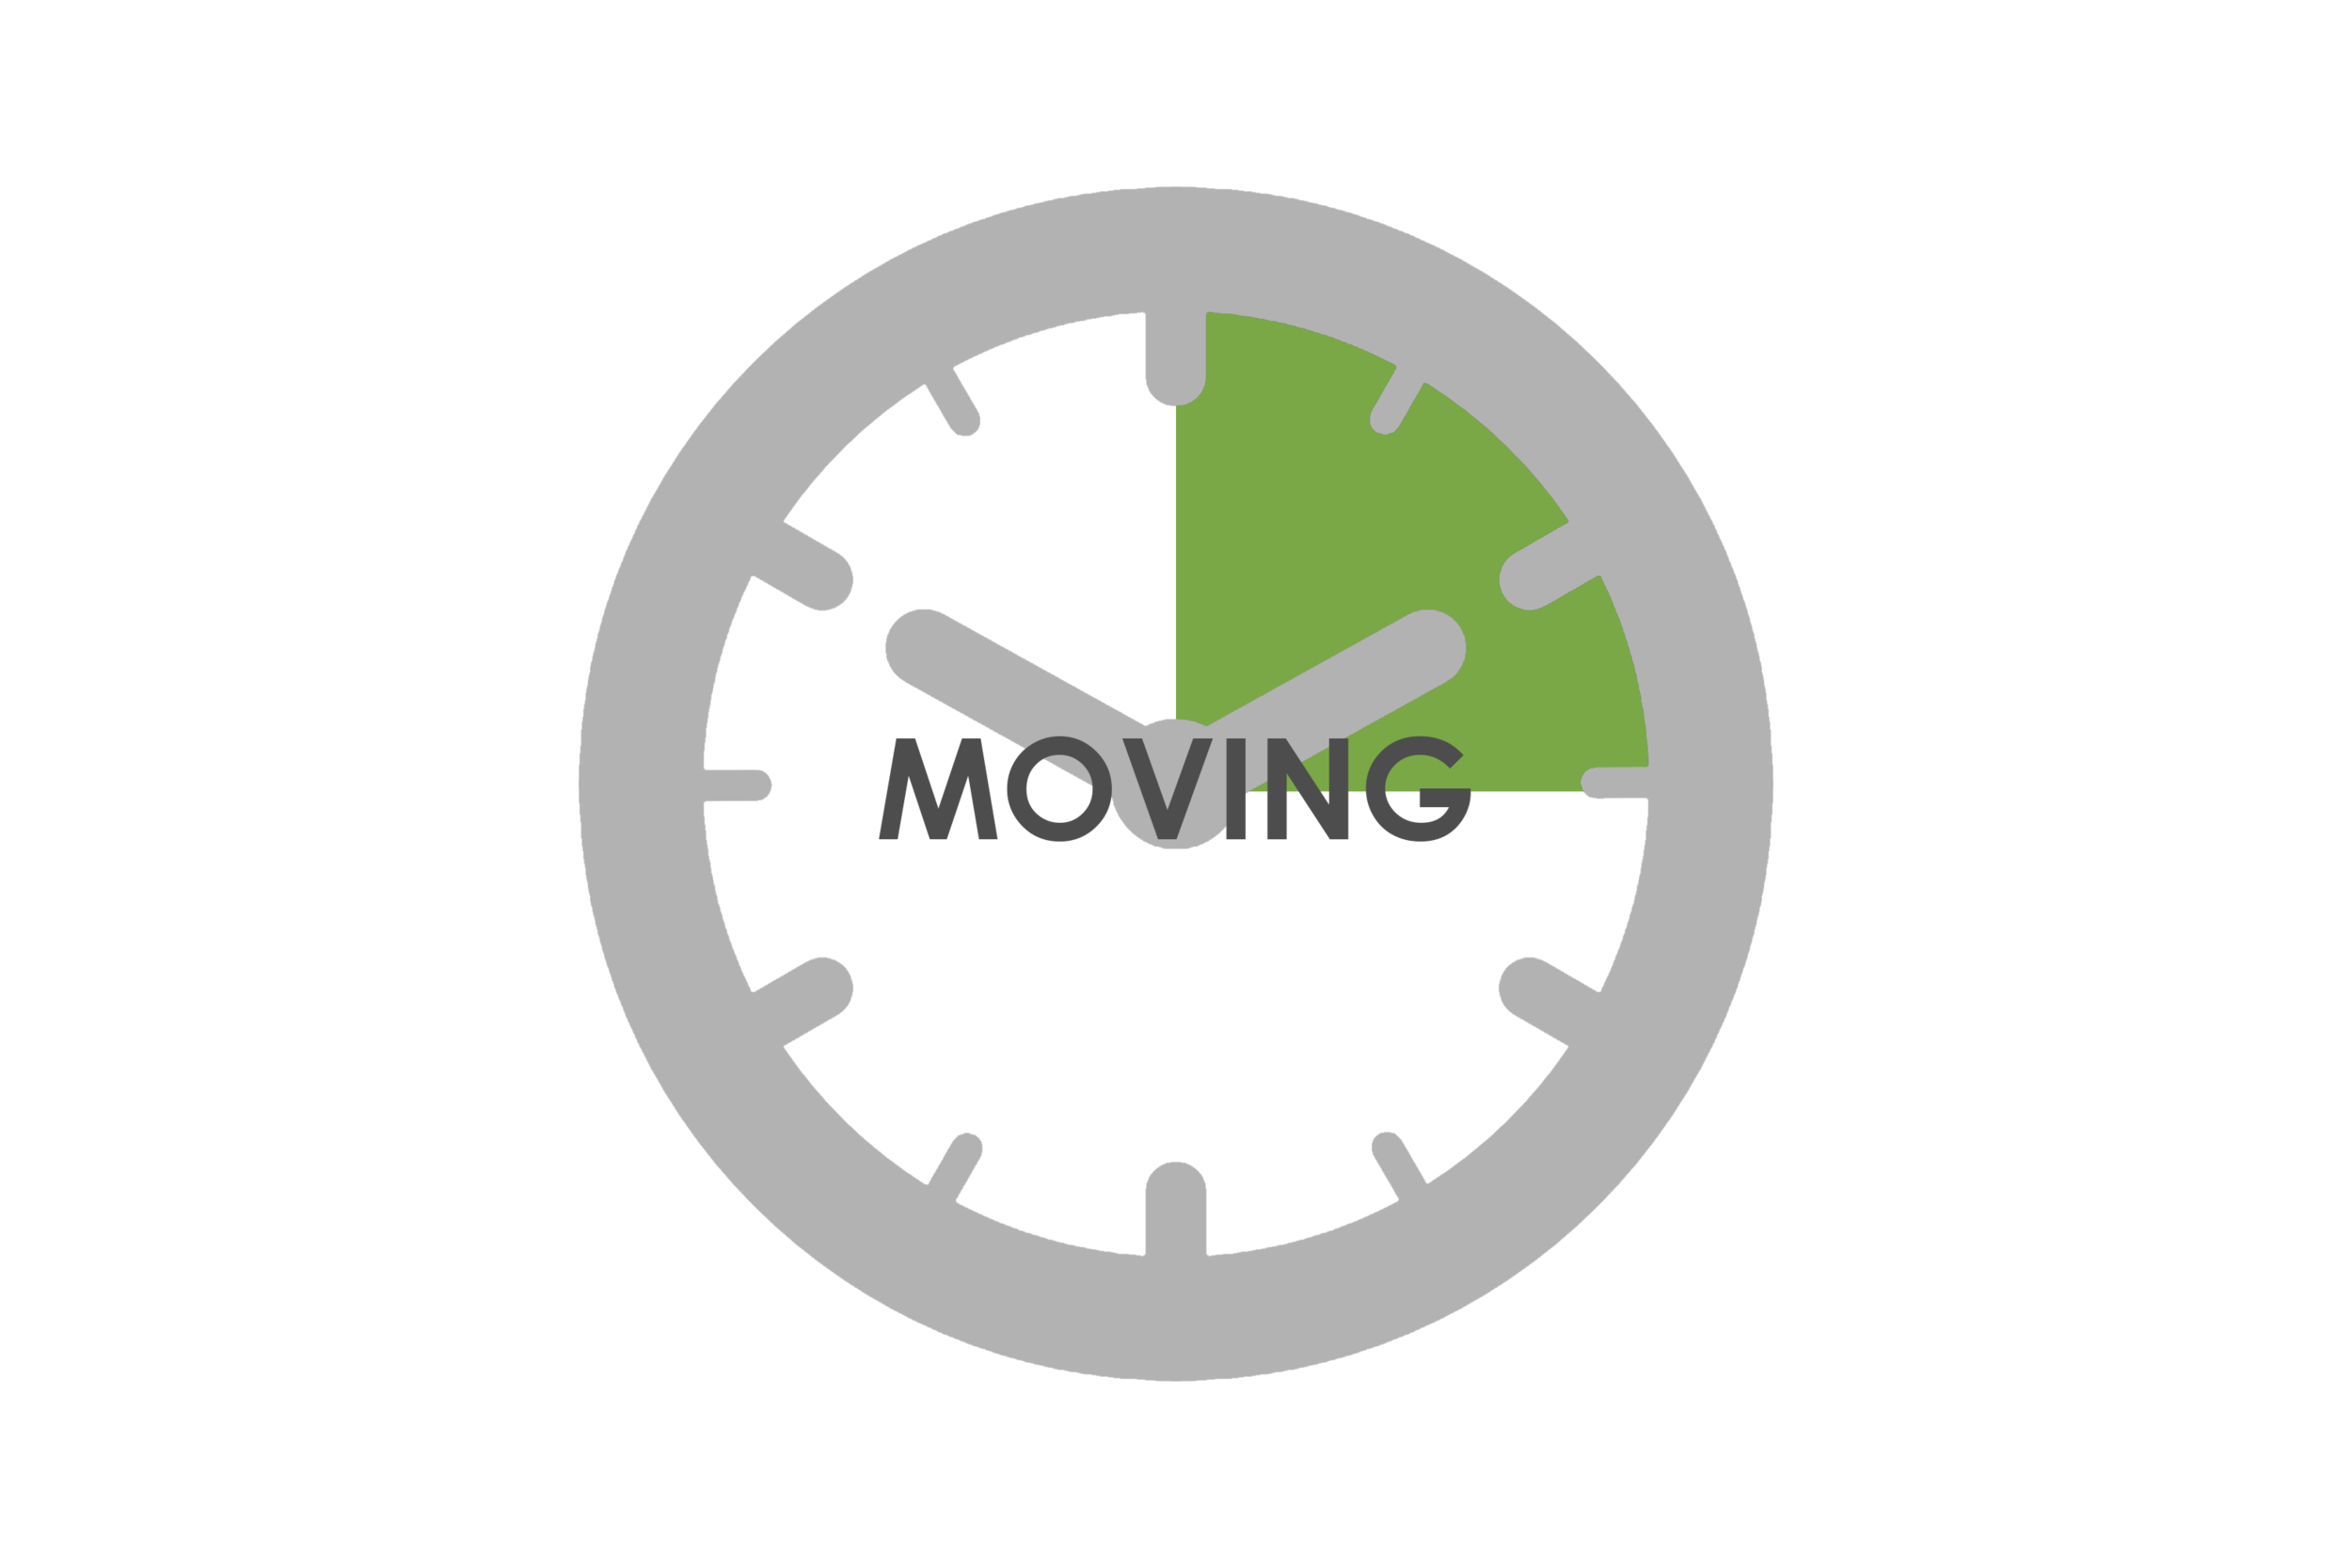 Fabrick-Design_Spend Time Moving Icon.png